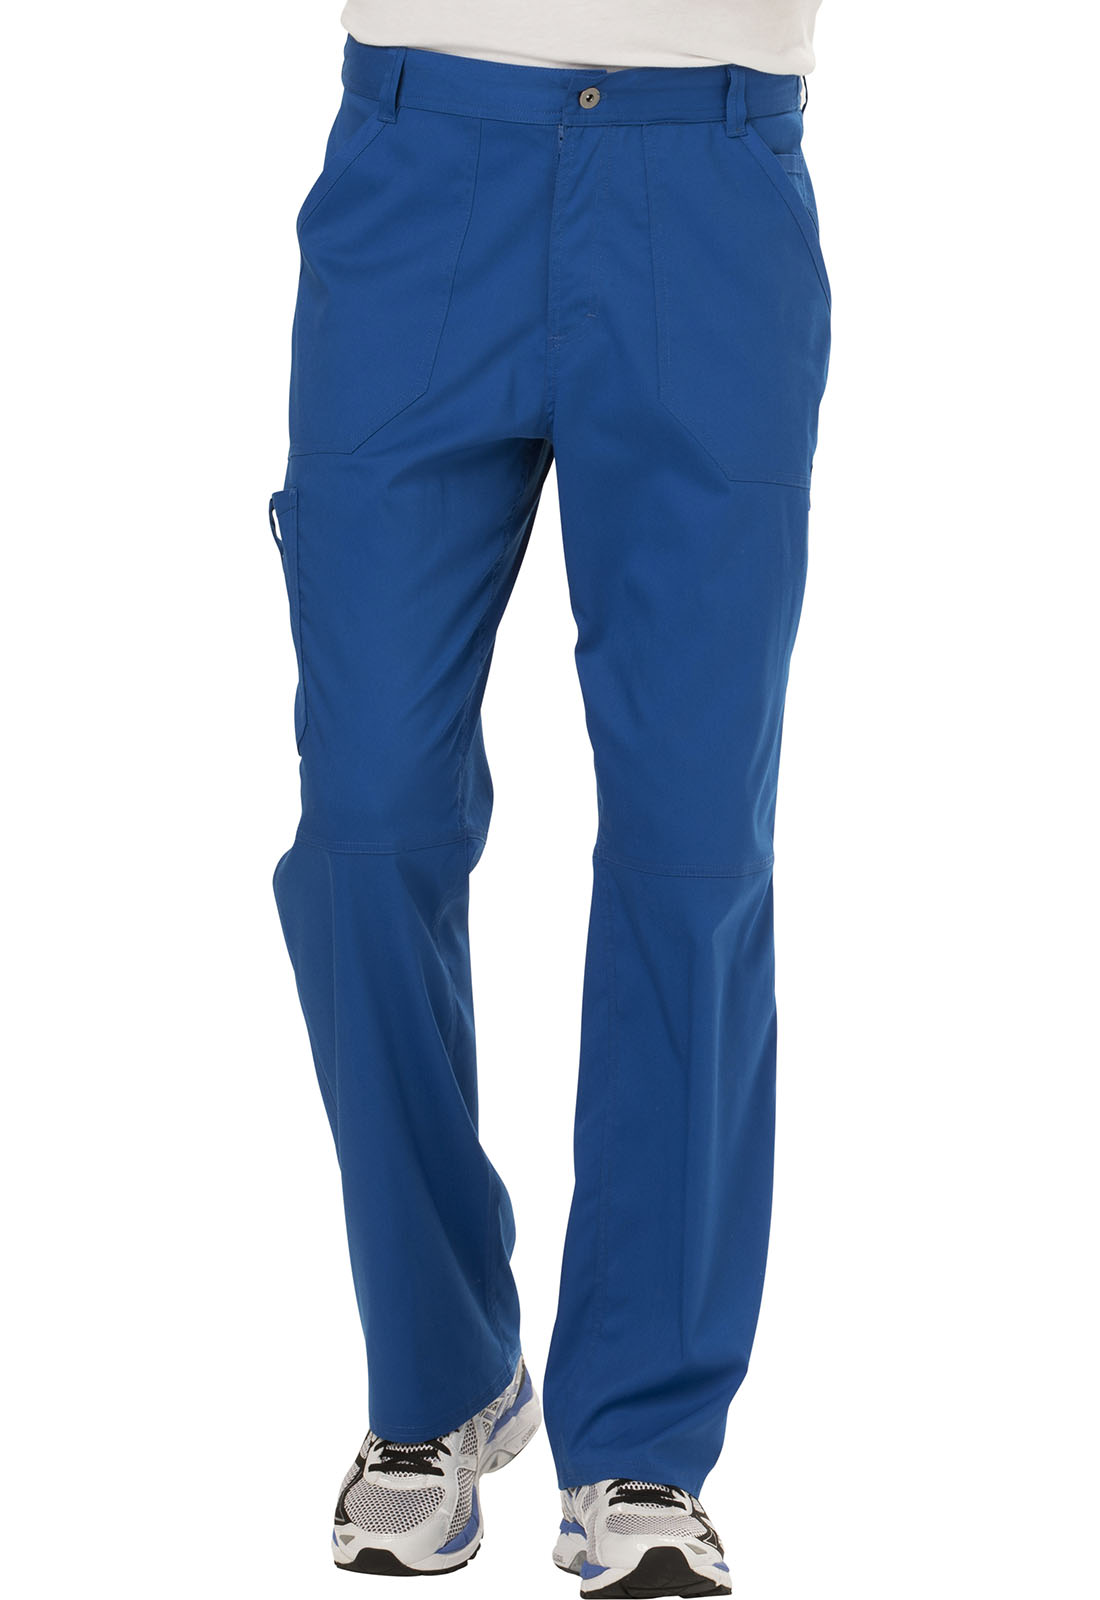 7fdd9a9eb81 WW Revolution Men's Fly Front Pant in Royal WW140-ROY from The ...